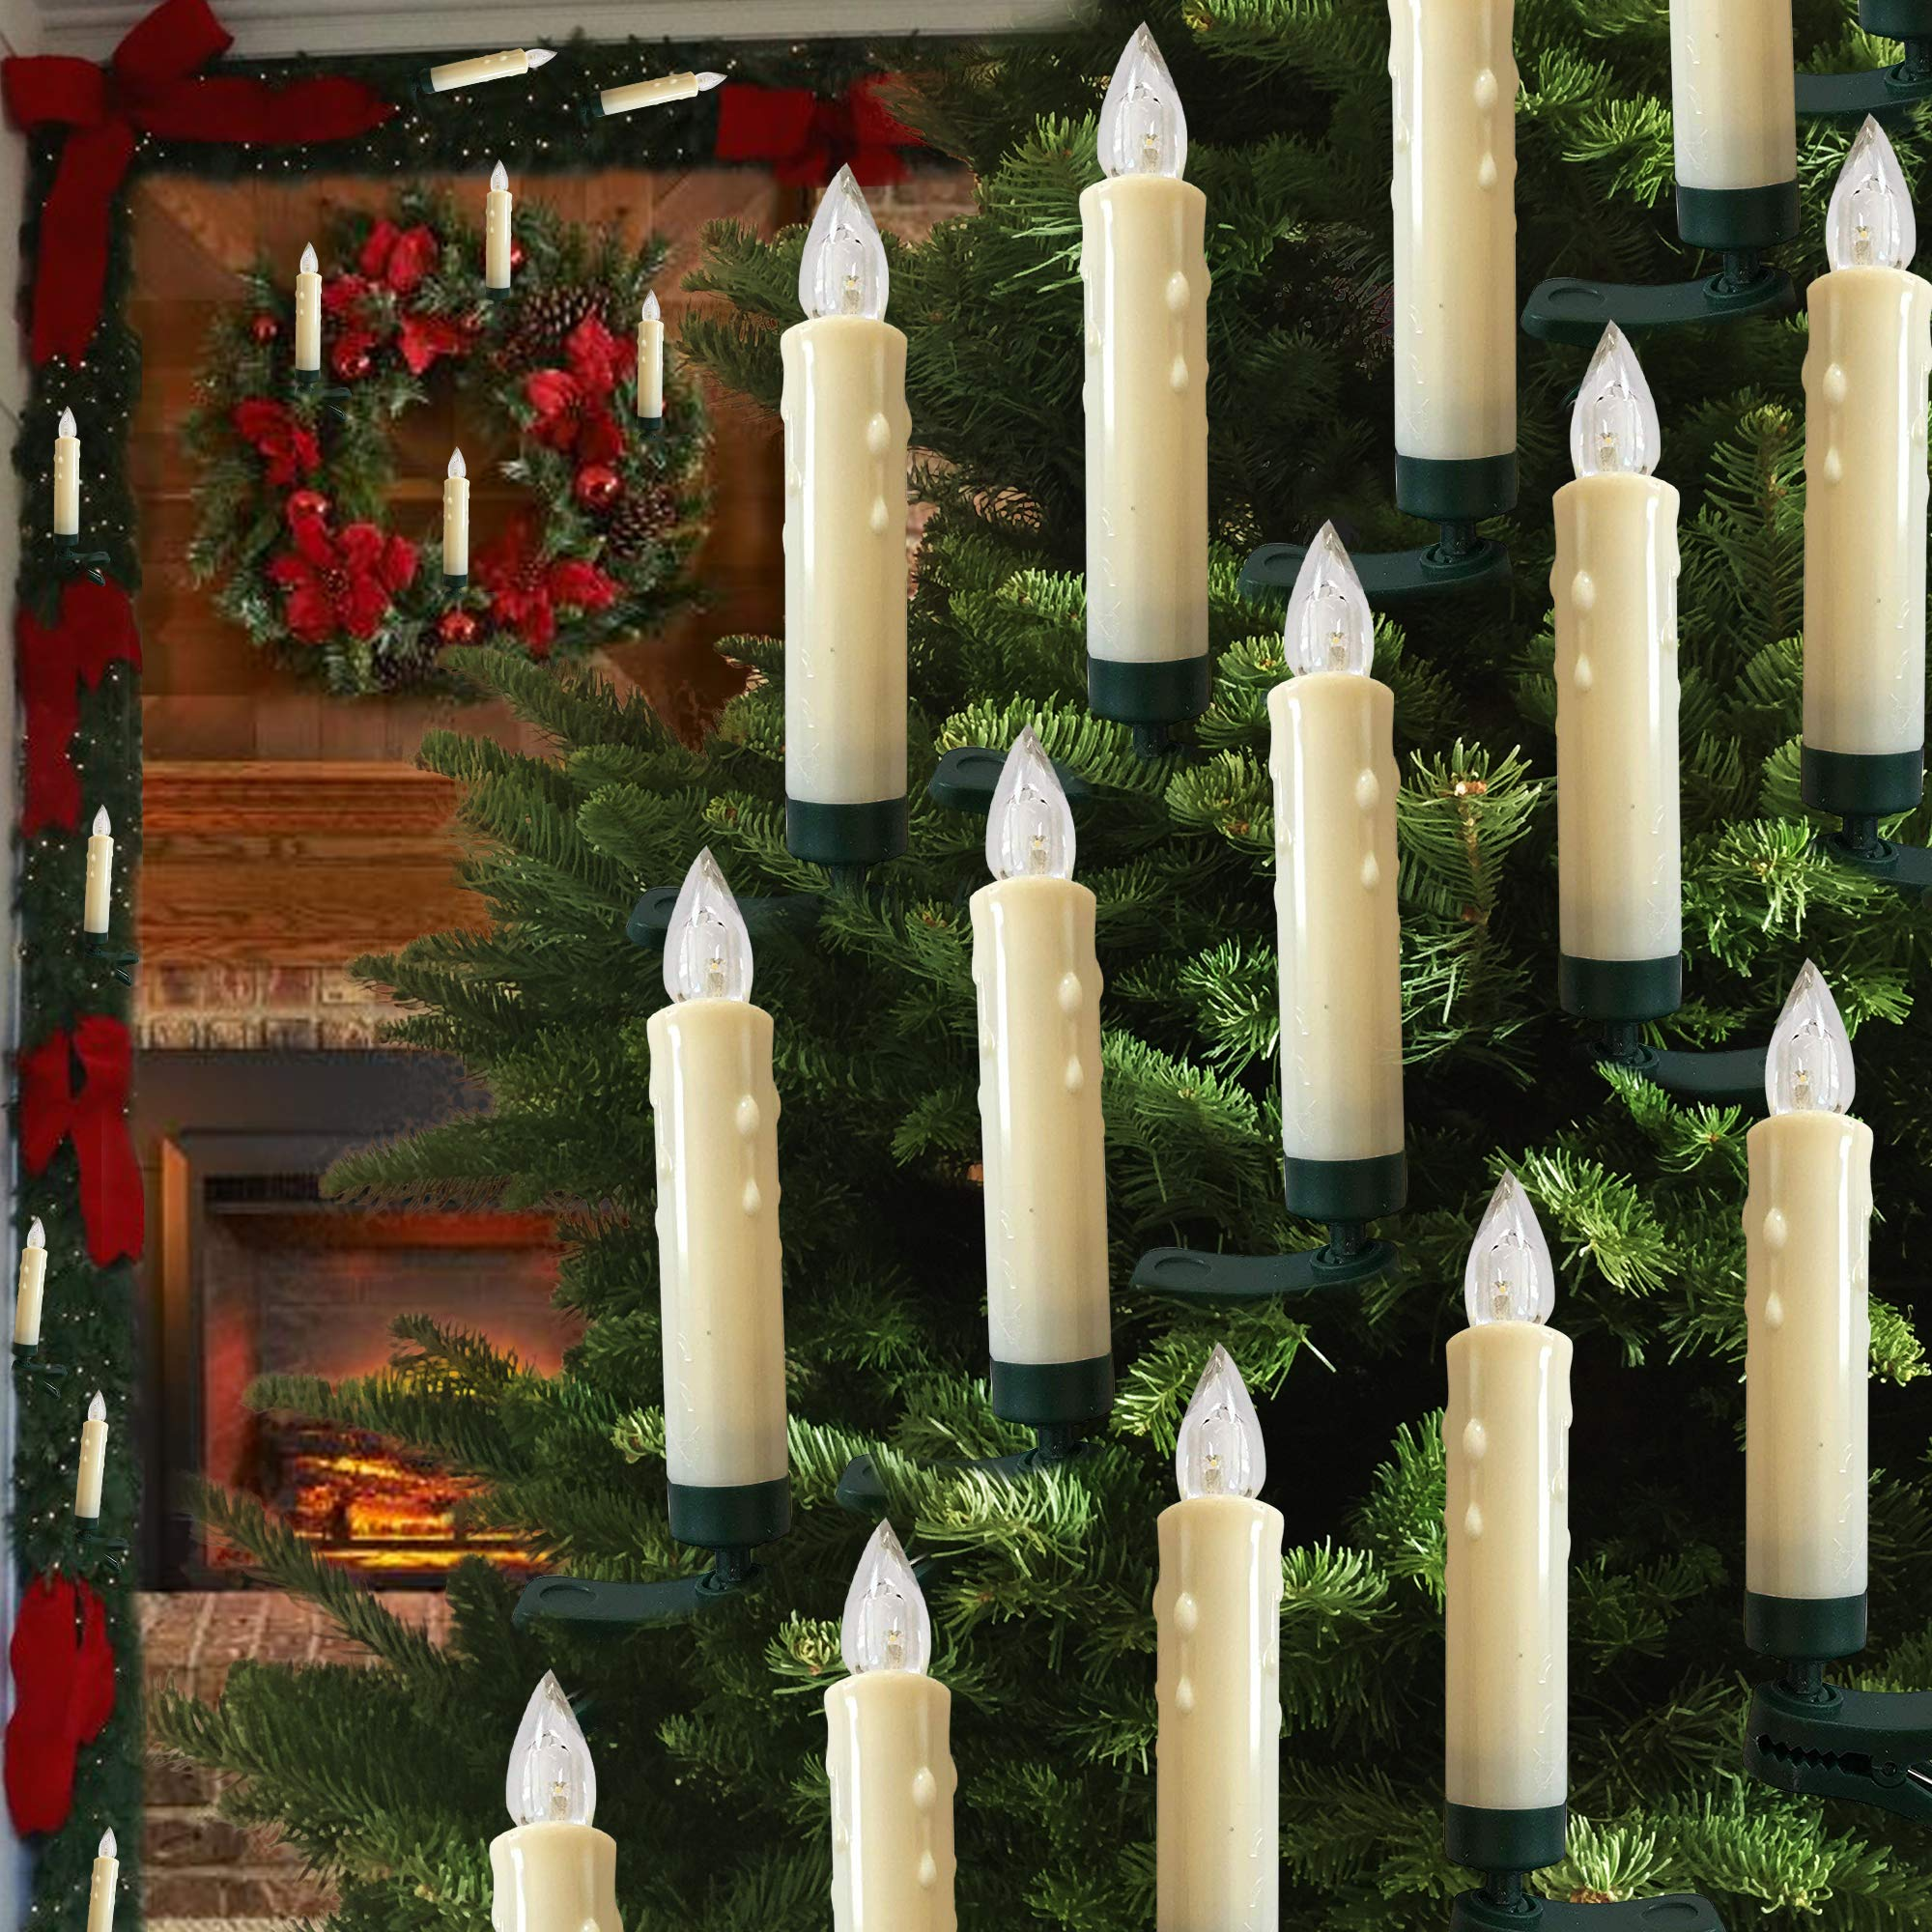 Hoolees' 20 Pcs LED Christmas Tree Candle Lights, Wireless, Flameless, Flickering, Battery Operated, Clip-on, TUV Listed, Remote Control, for Christmas Tree Decorations and Ornaments. (20 Pcs Ivory) by Hoolees